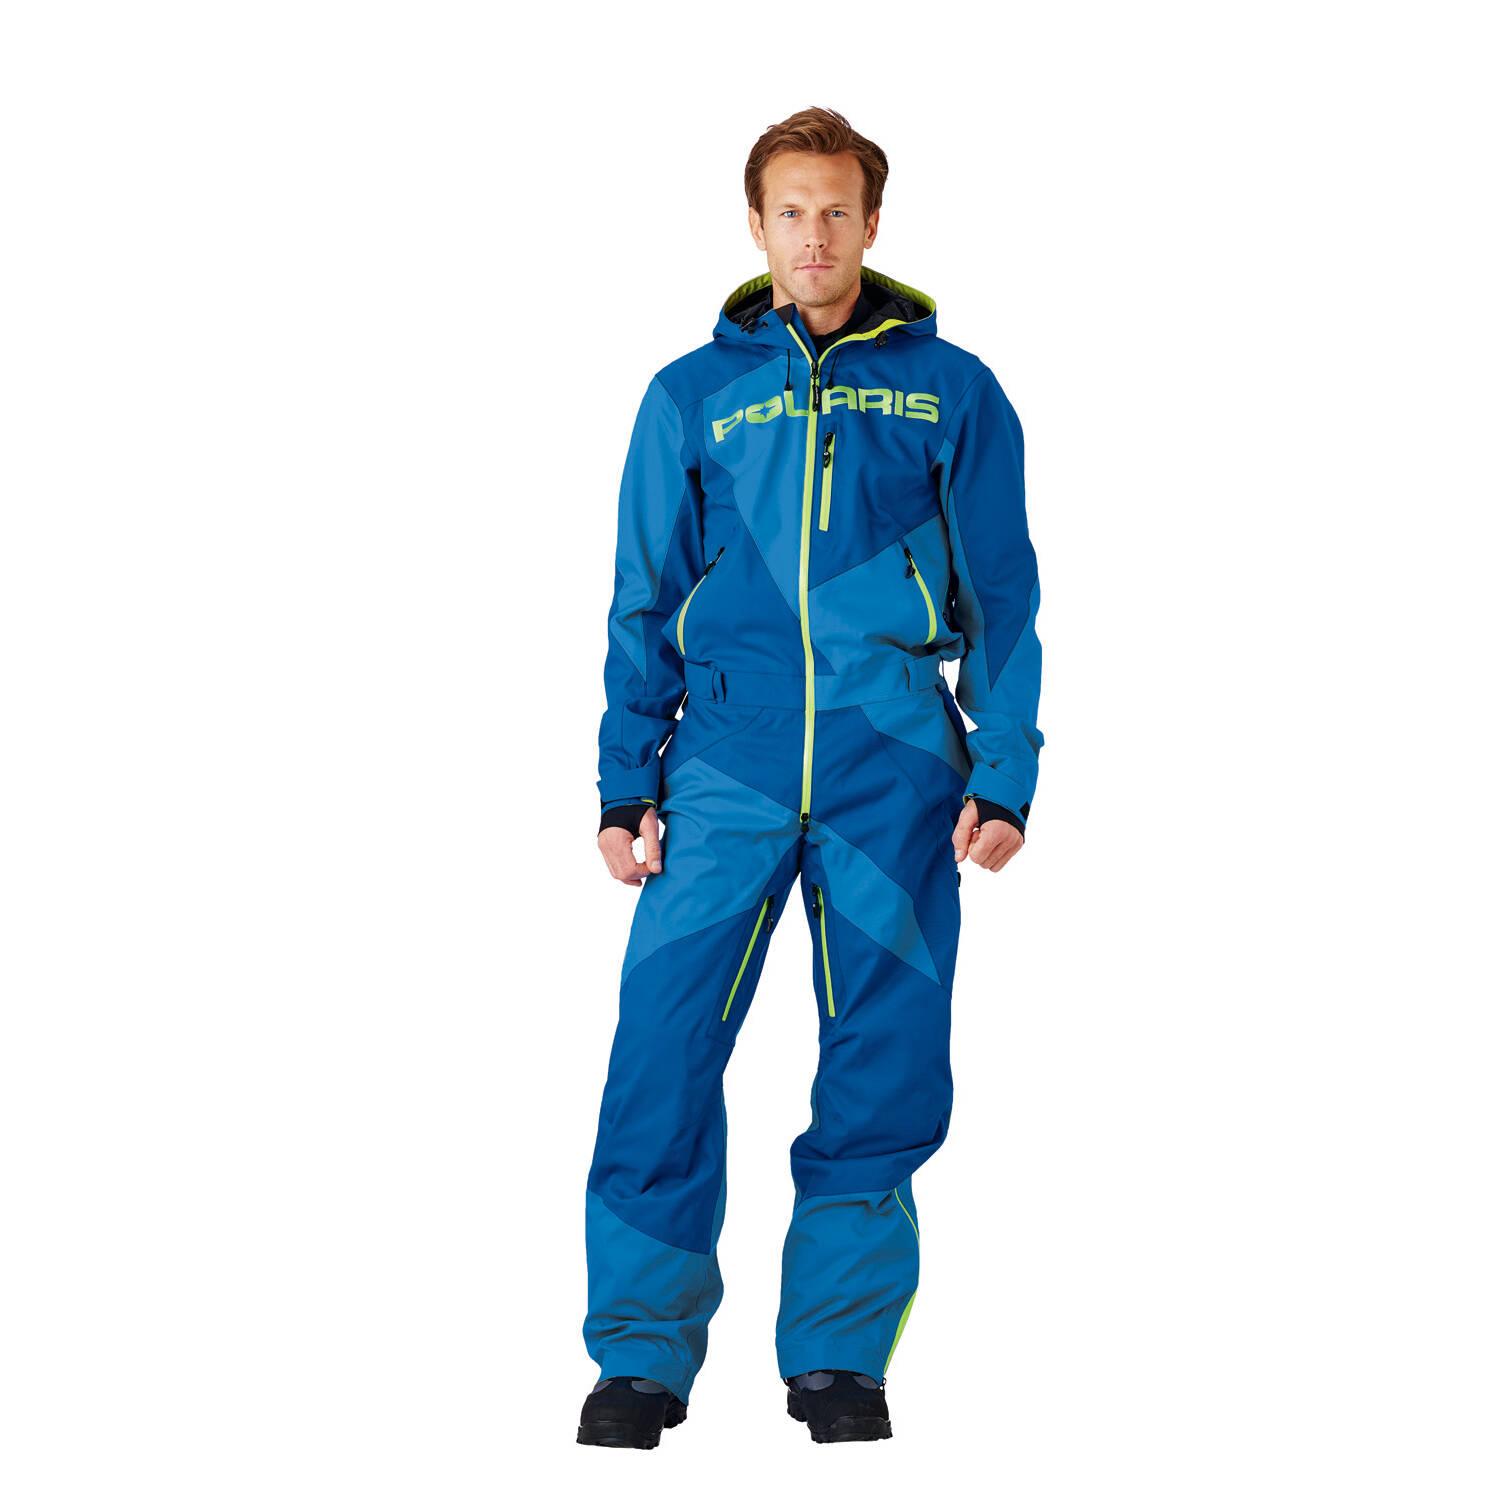 Men's Full-Zip Monosuit/Snowsuit with Water Repellent Coating, Blue